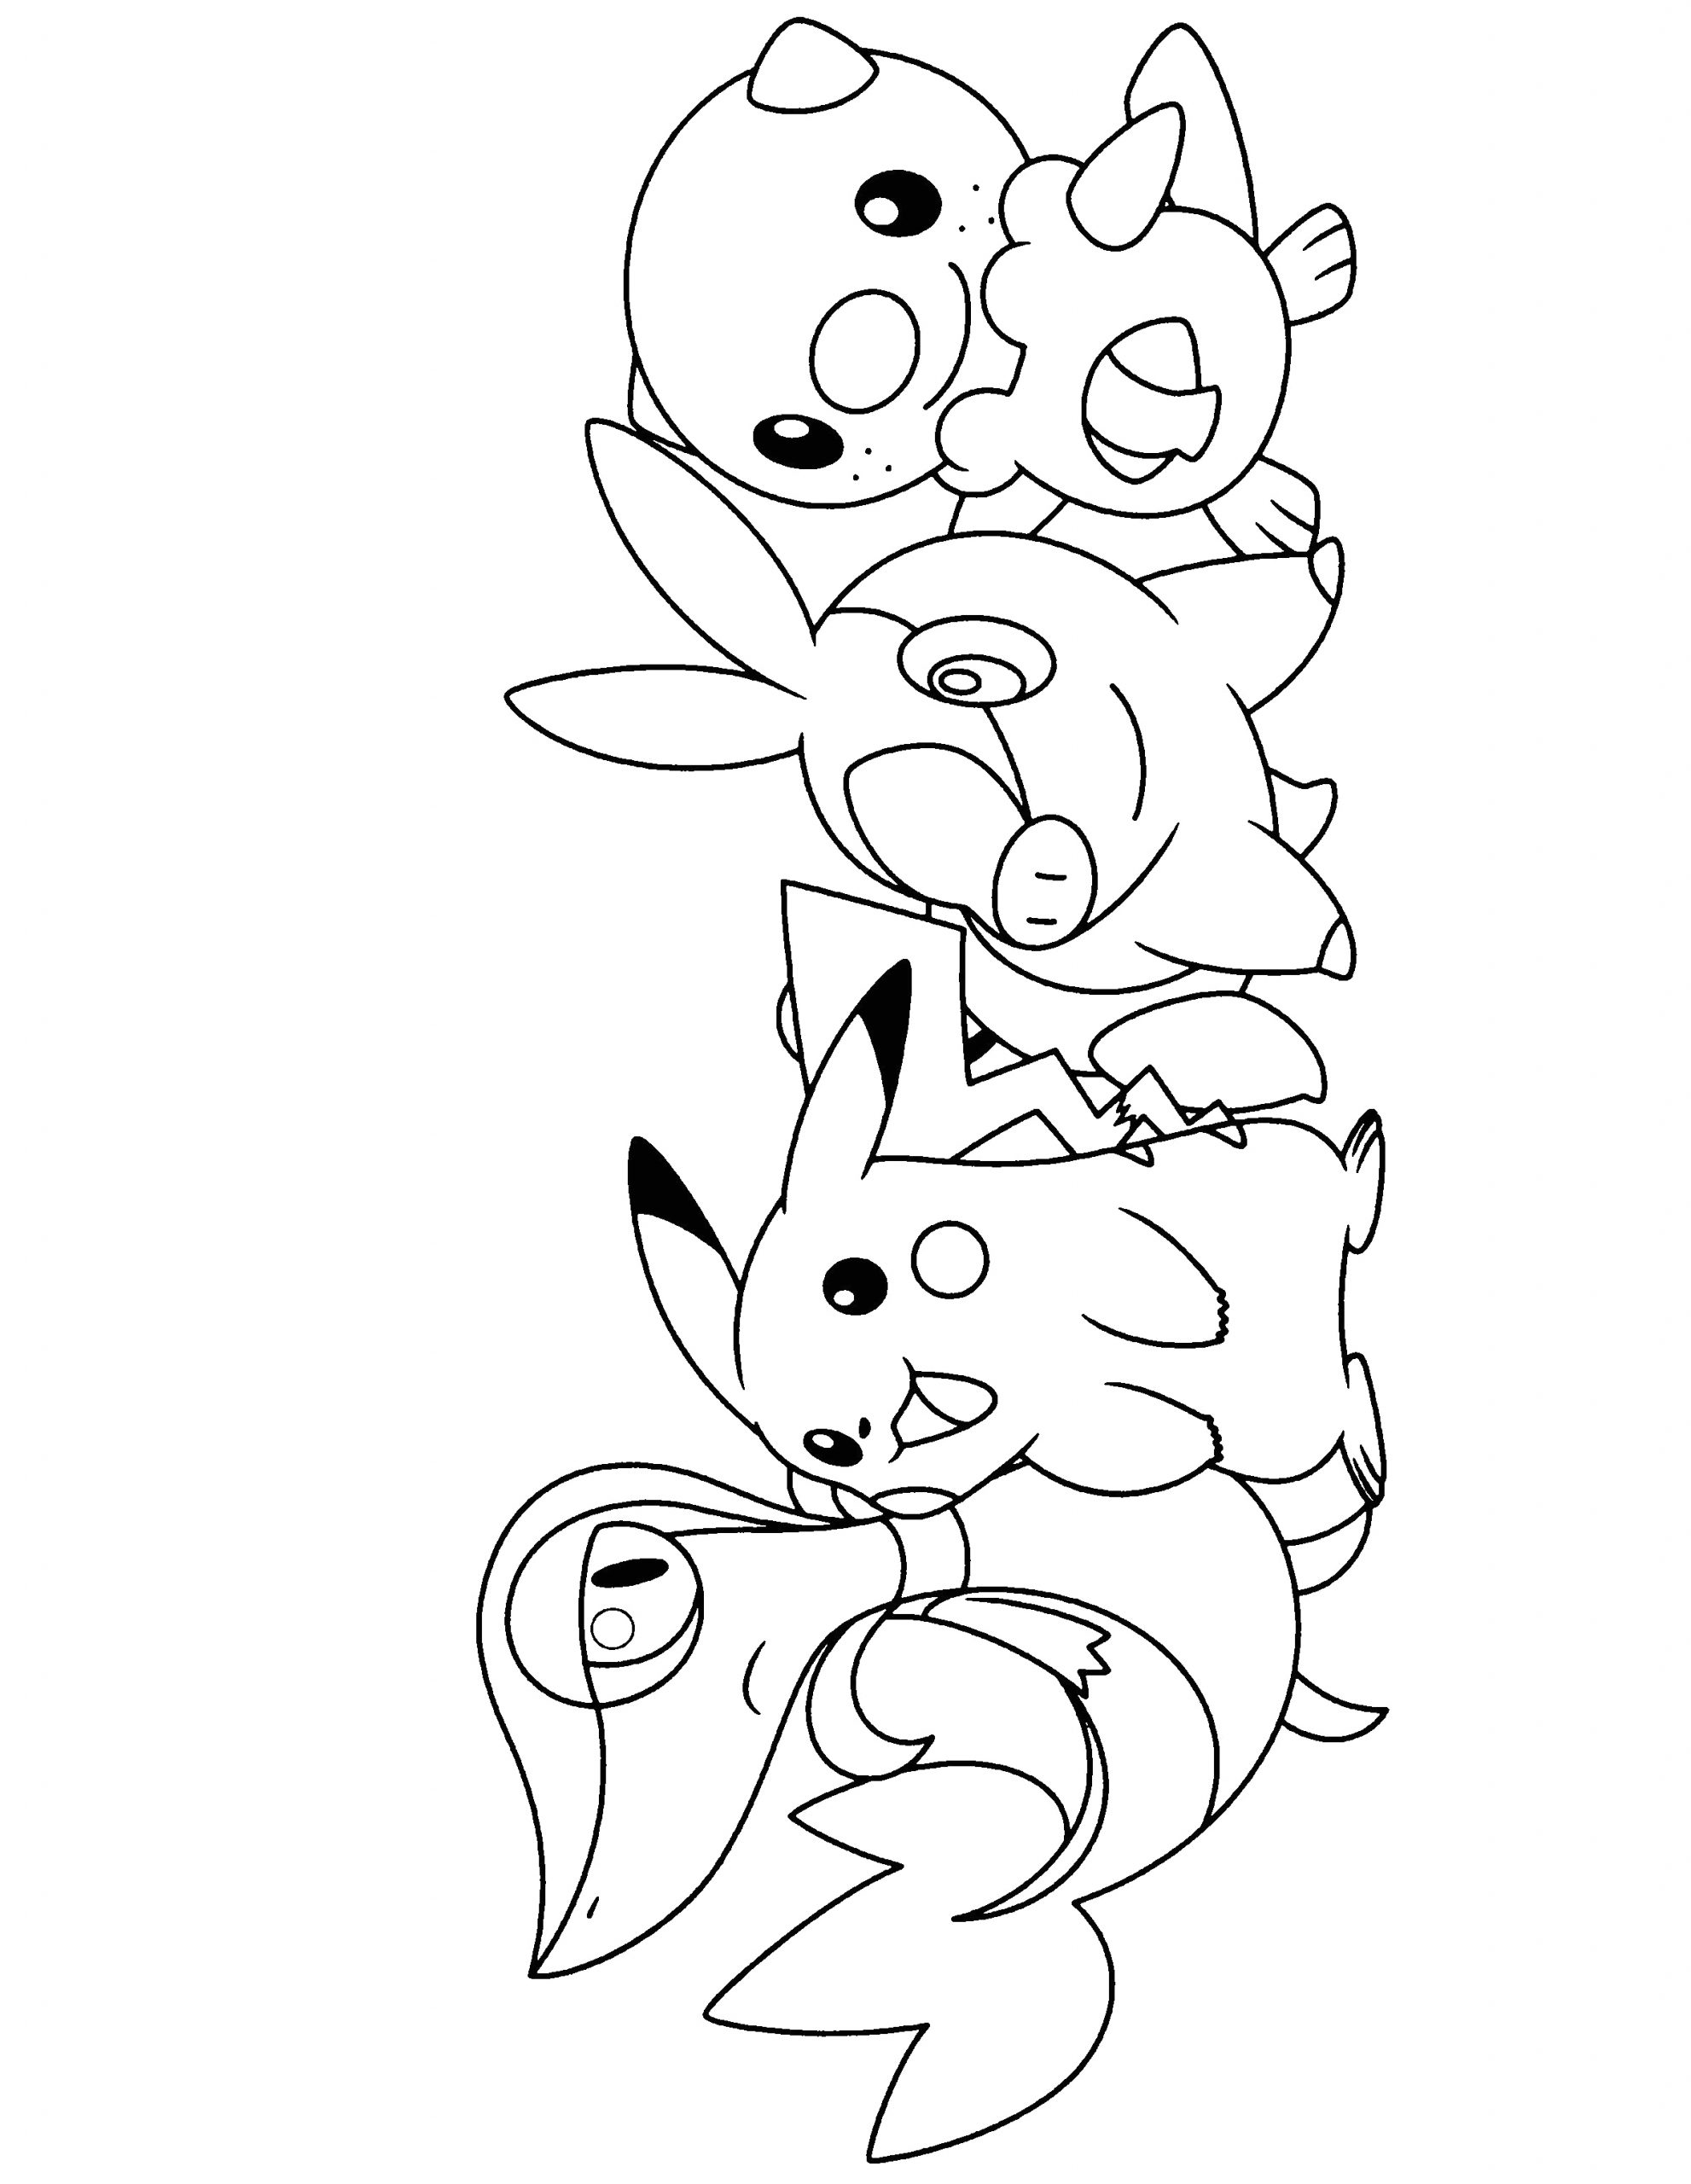 Pokemon Coloring Pages Printable Black and White Coloring Pokemon Black and White – Through the Thousand